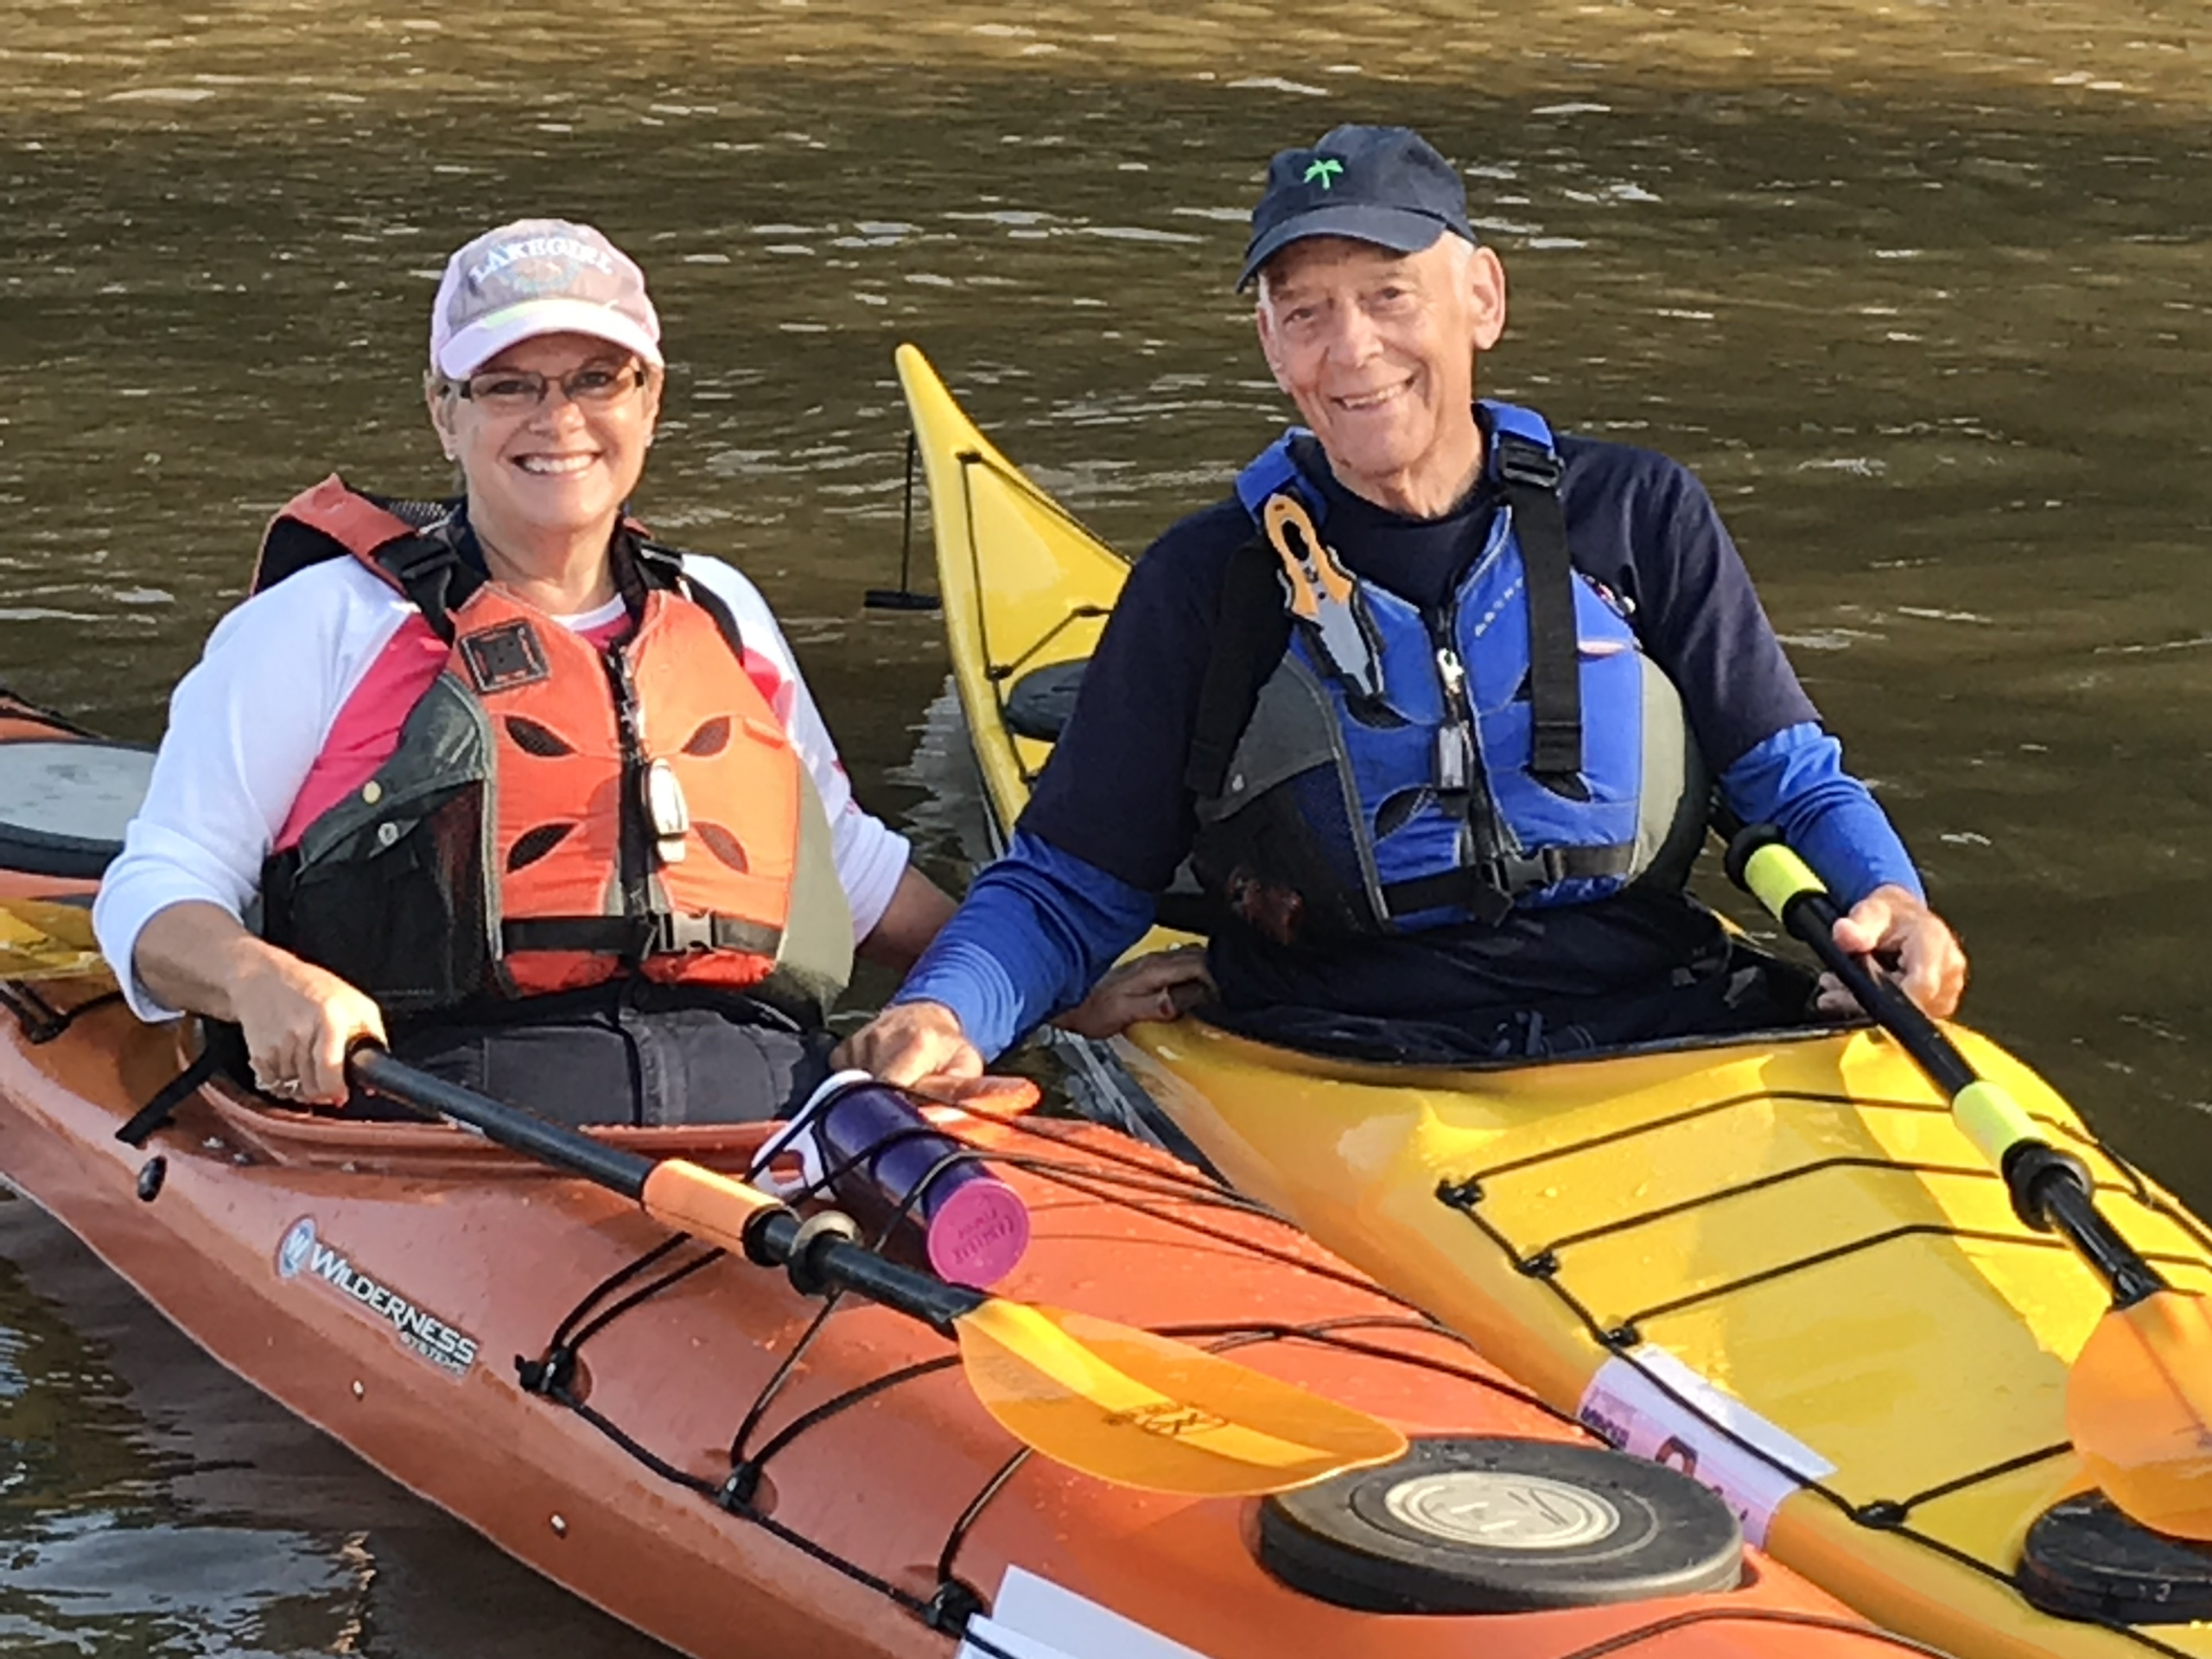 Whit Johnson and Gloria Johnson sitting in kayaks holding their boats next to each other